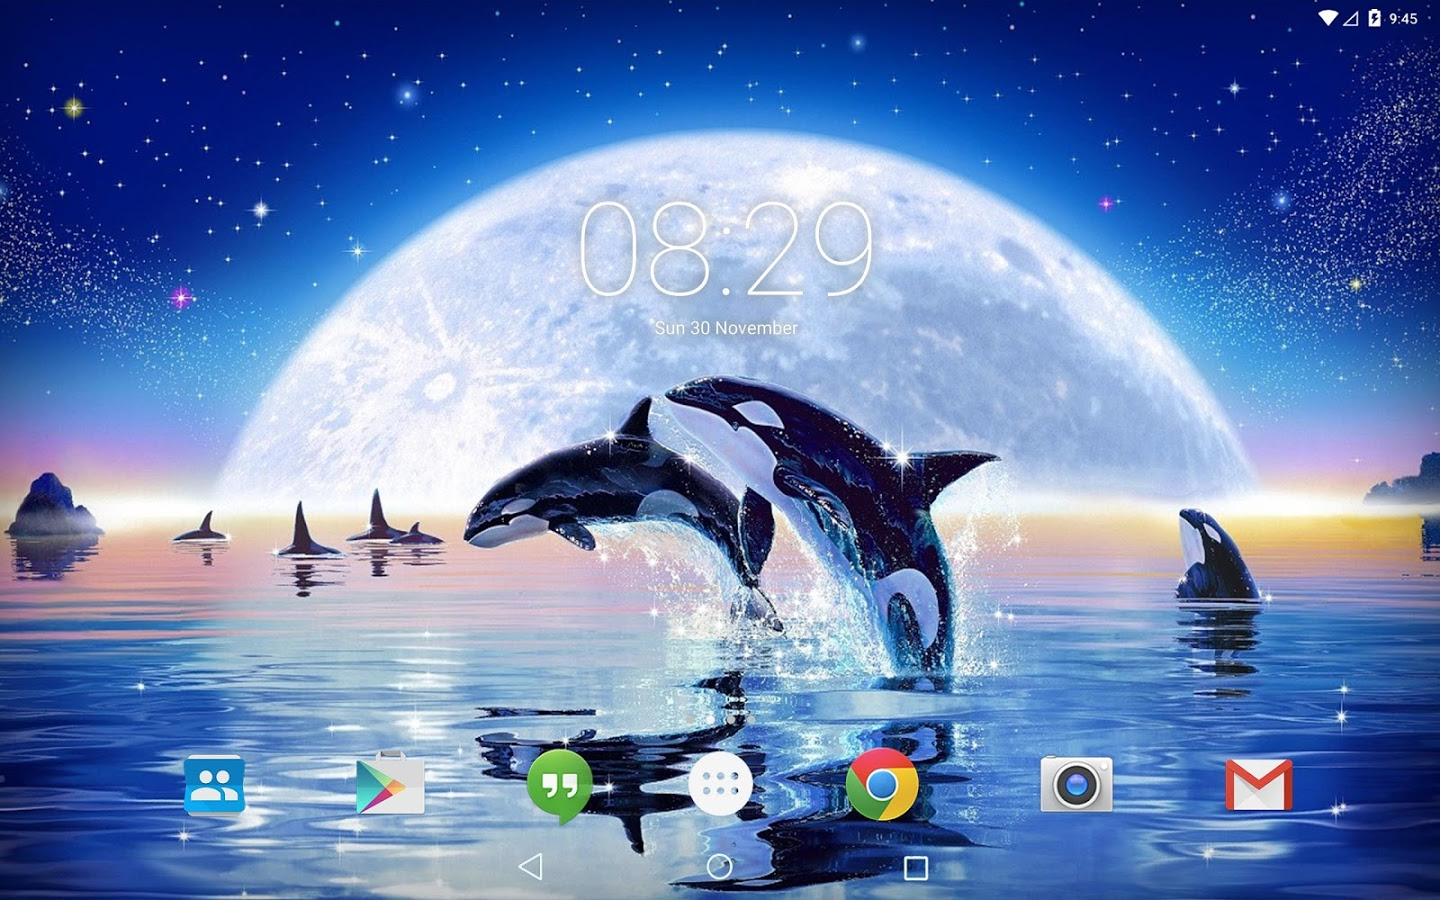 Ocean Dolphins Live Wallpaper Apk Thing Android Apps